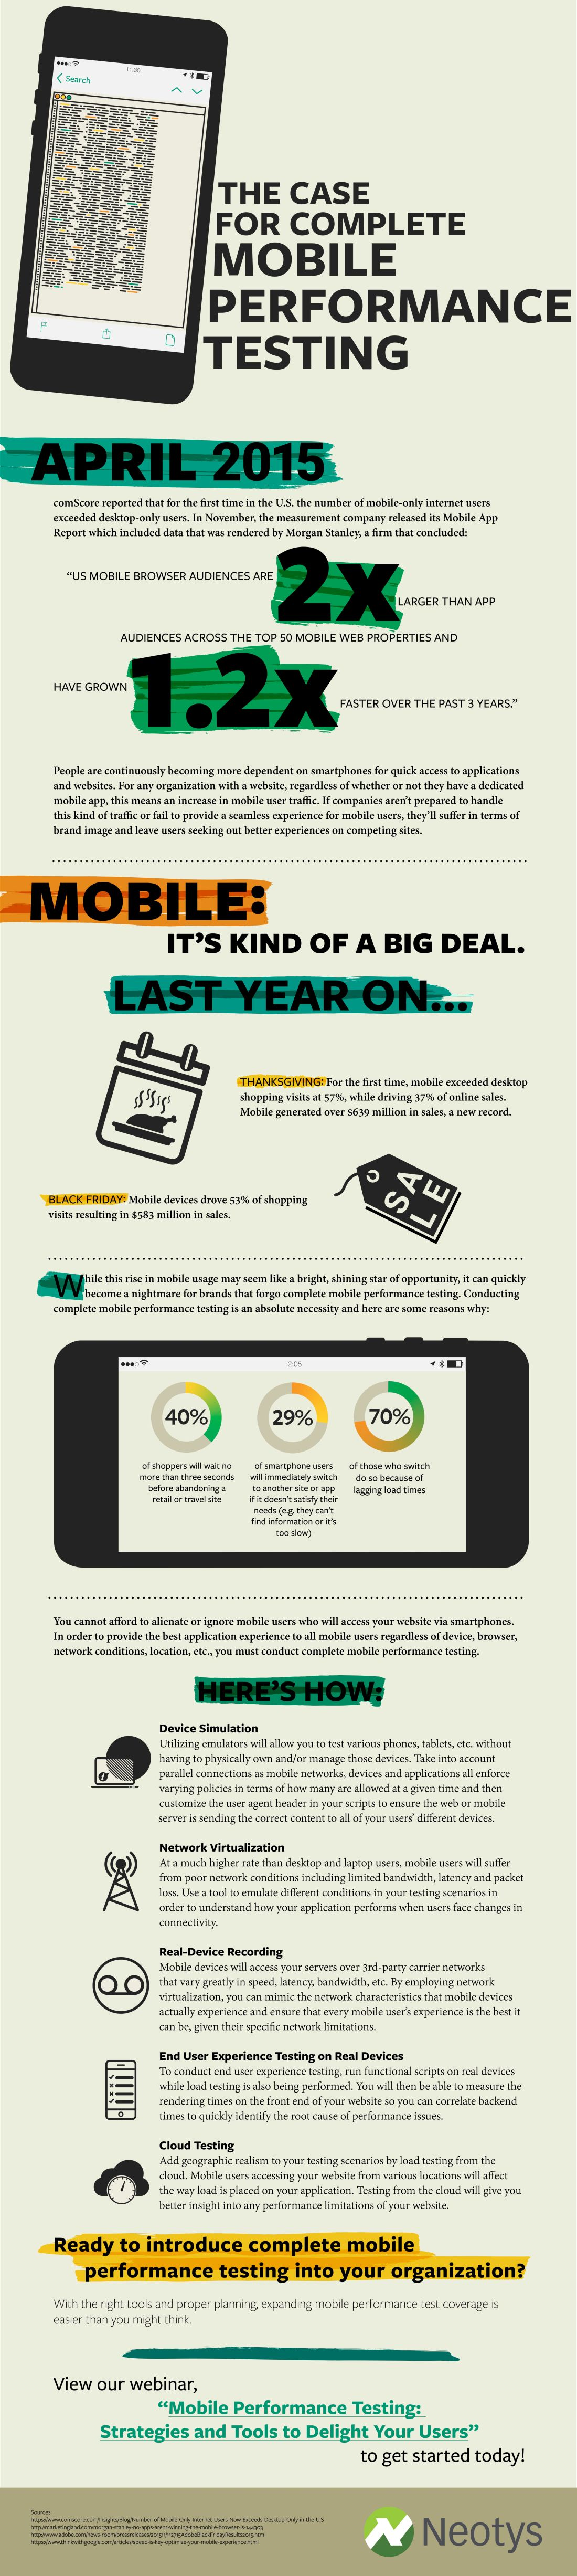 The Case for Complete Mobile Performance Testing Infographic